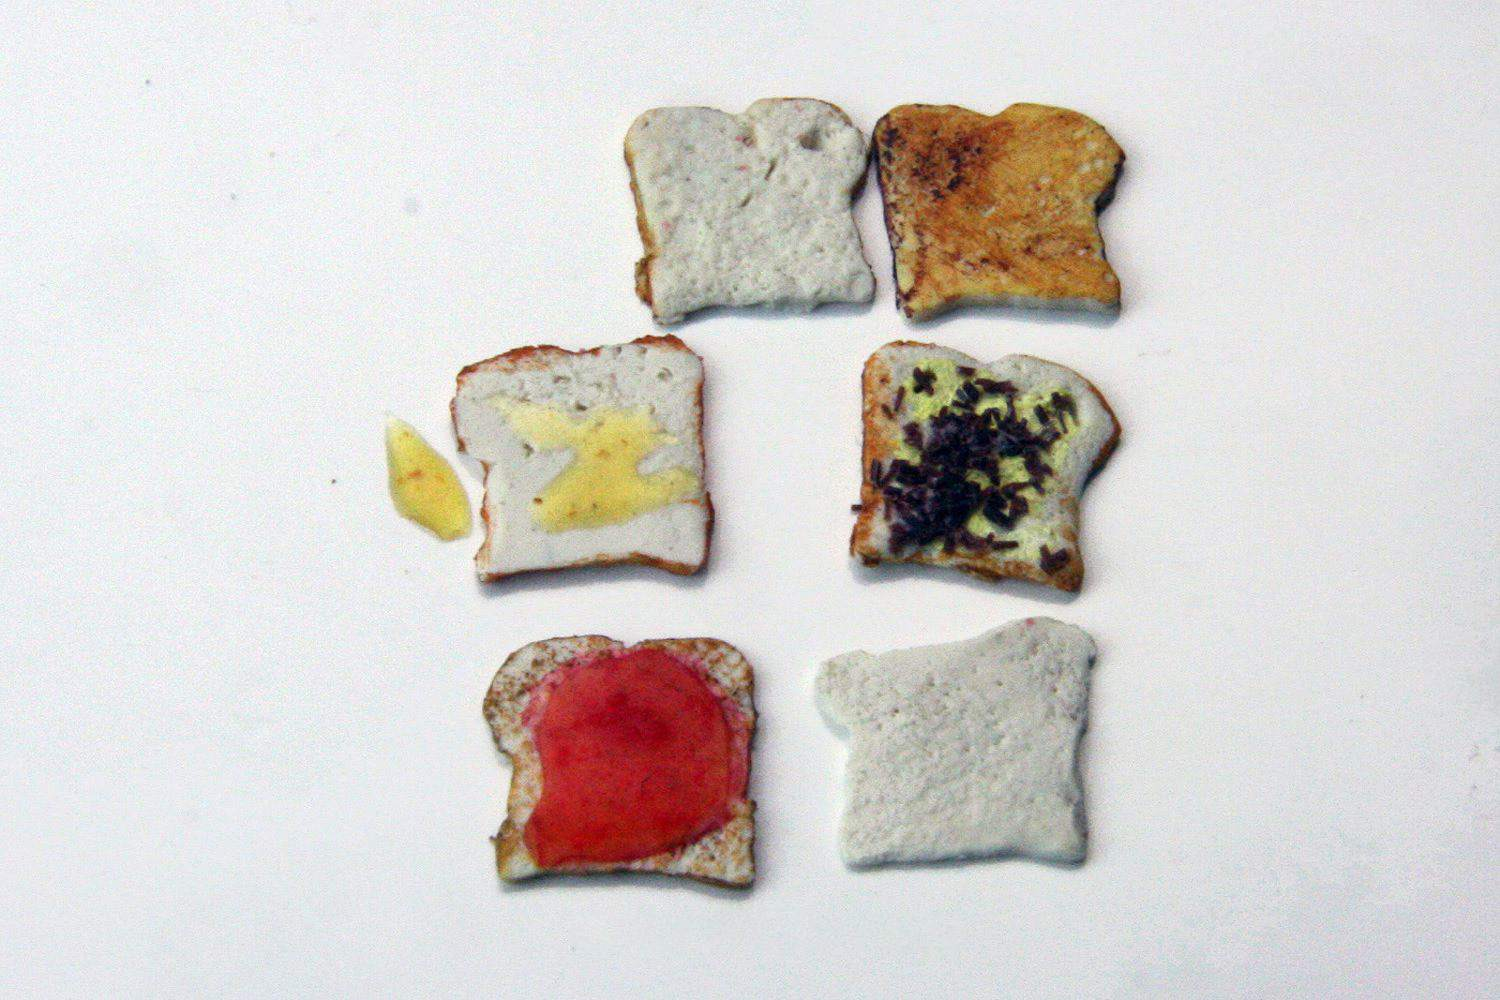 Different bread slices with toppings in doll size